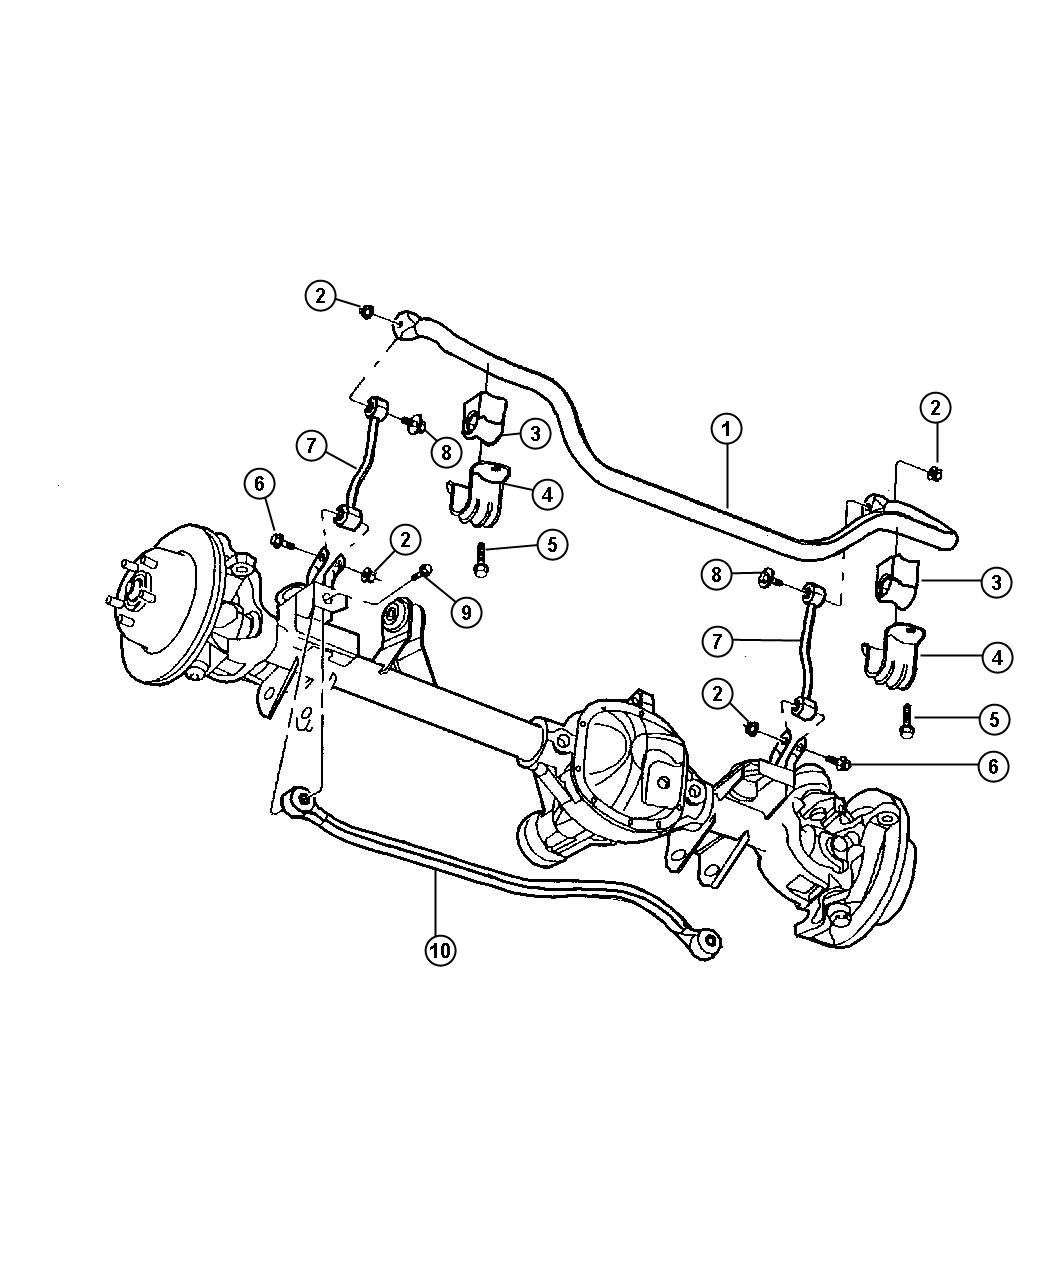 hight resolution of 2004 chrysler pacifica rear suspension diagram 2007 chrysler pacifica fuse box location 2005 chrysler pacifica fuse